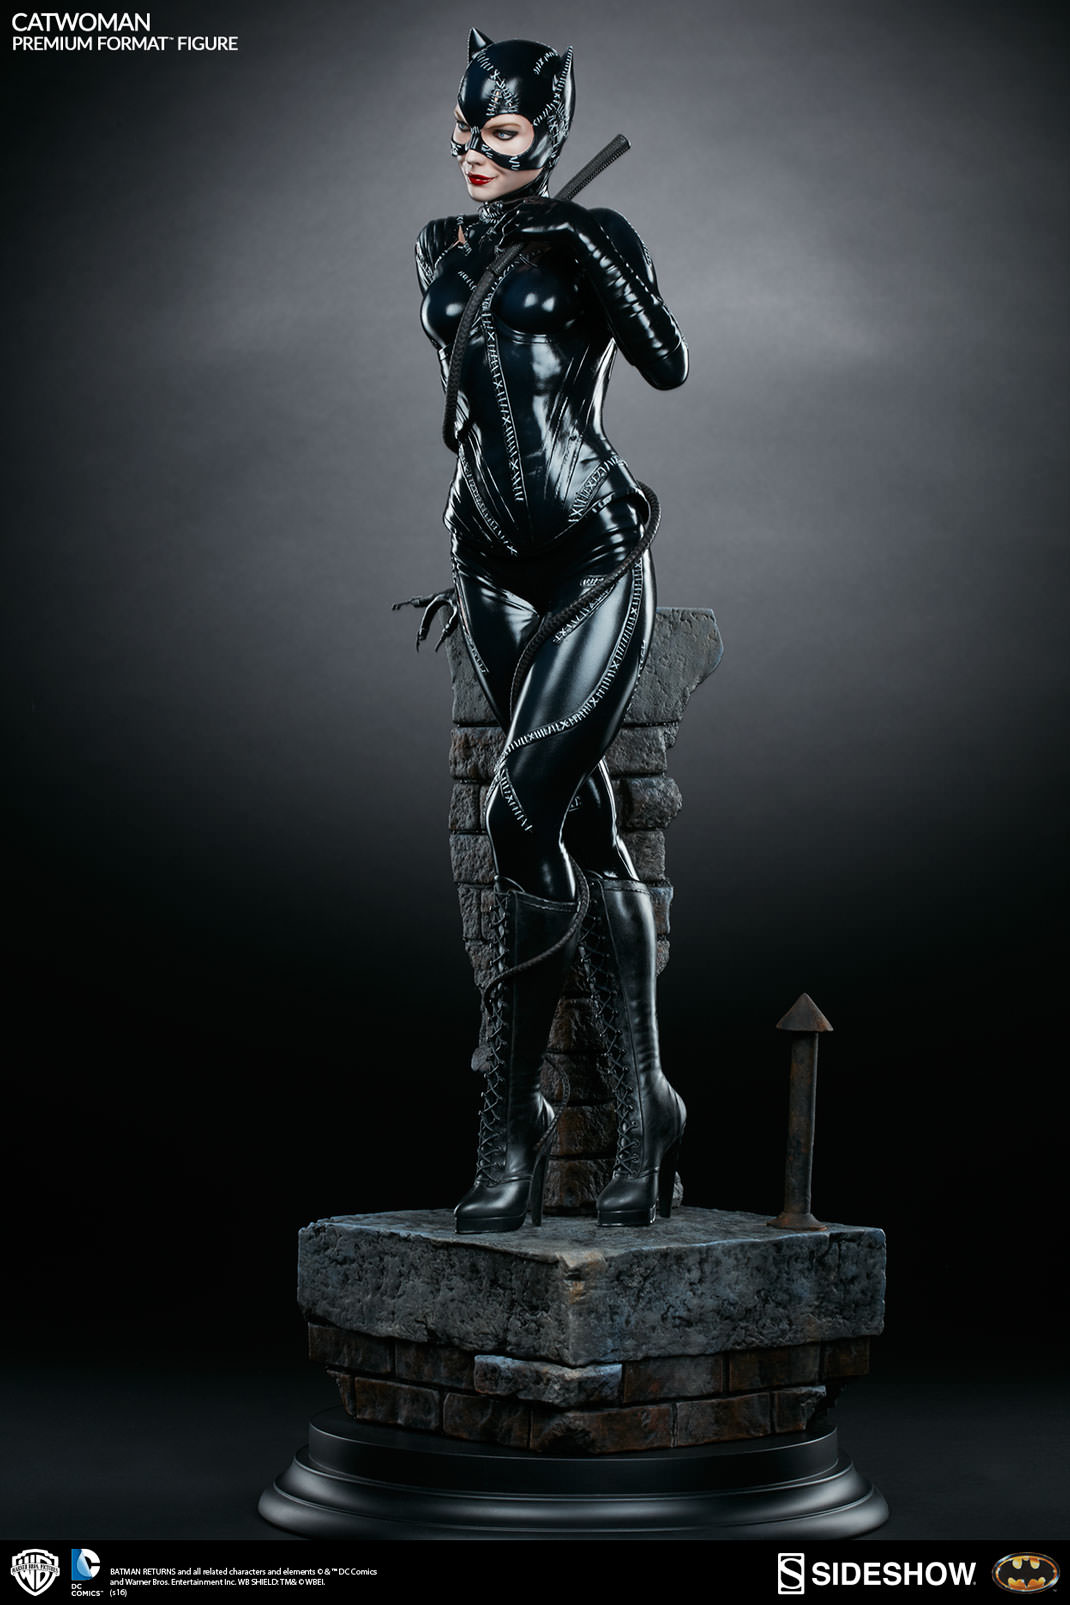 sideshow catwoman statue photos and info the toyark news